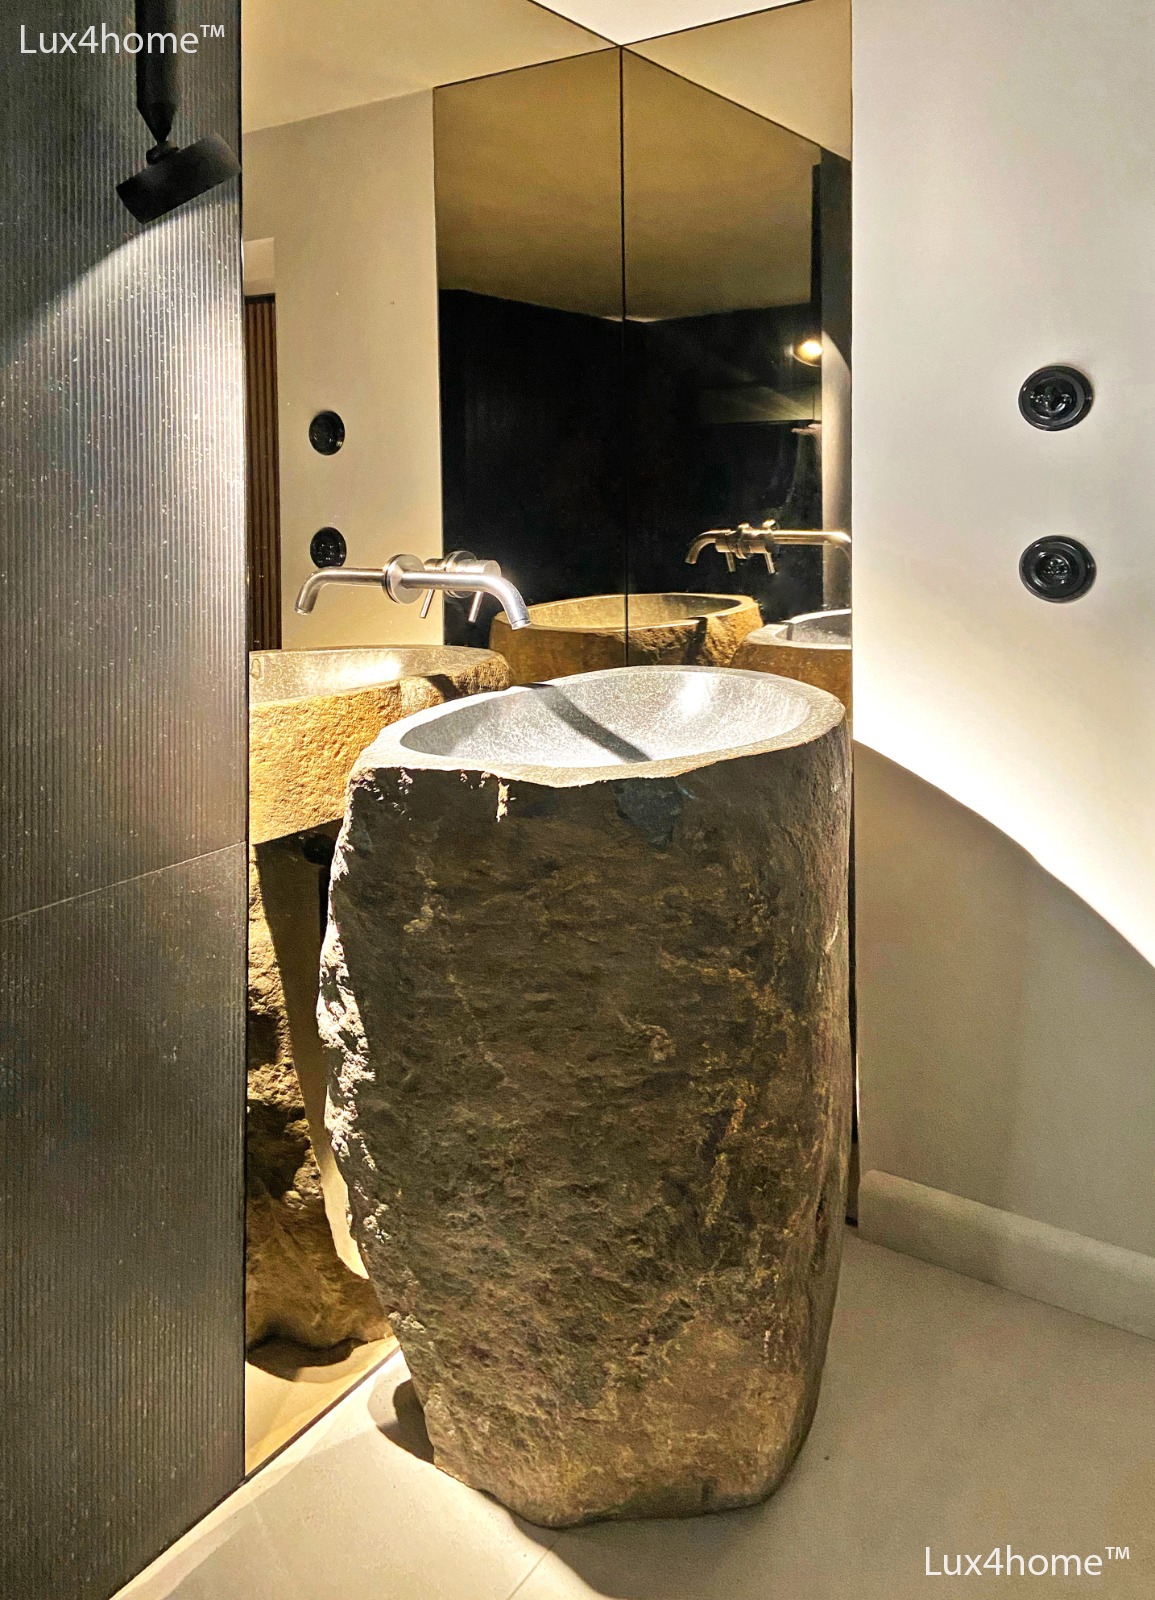 matching stone sinks and stone bathtubs